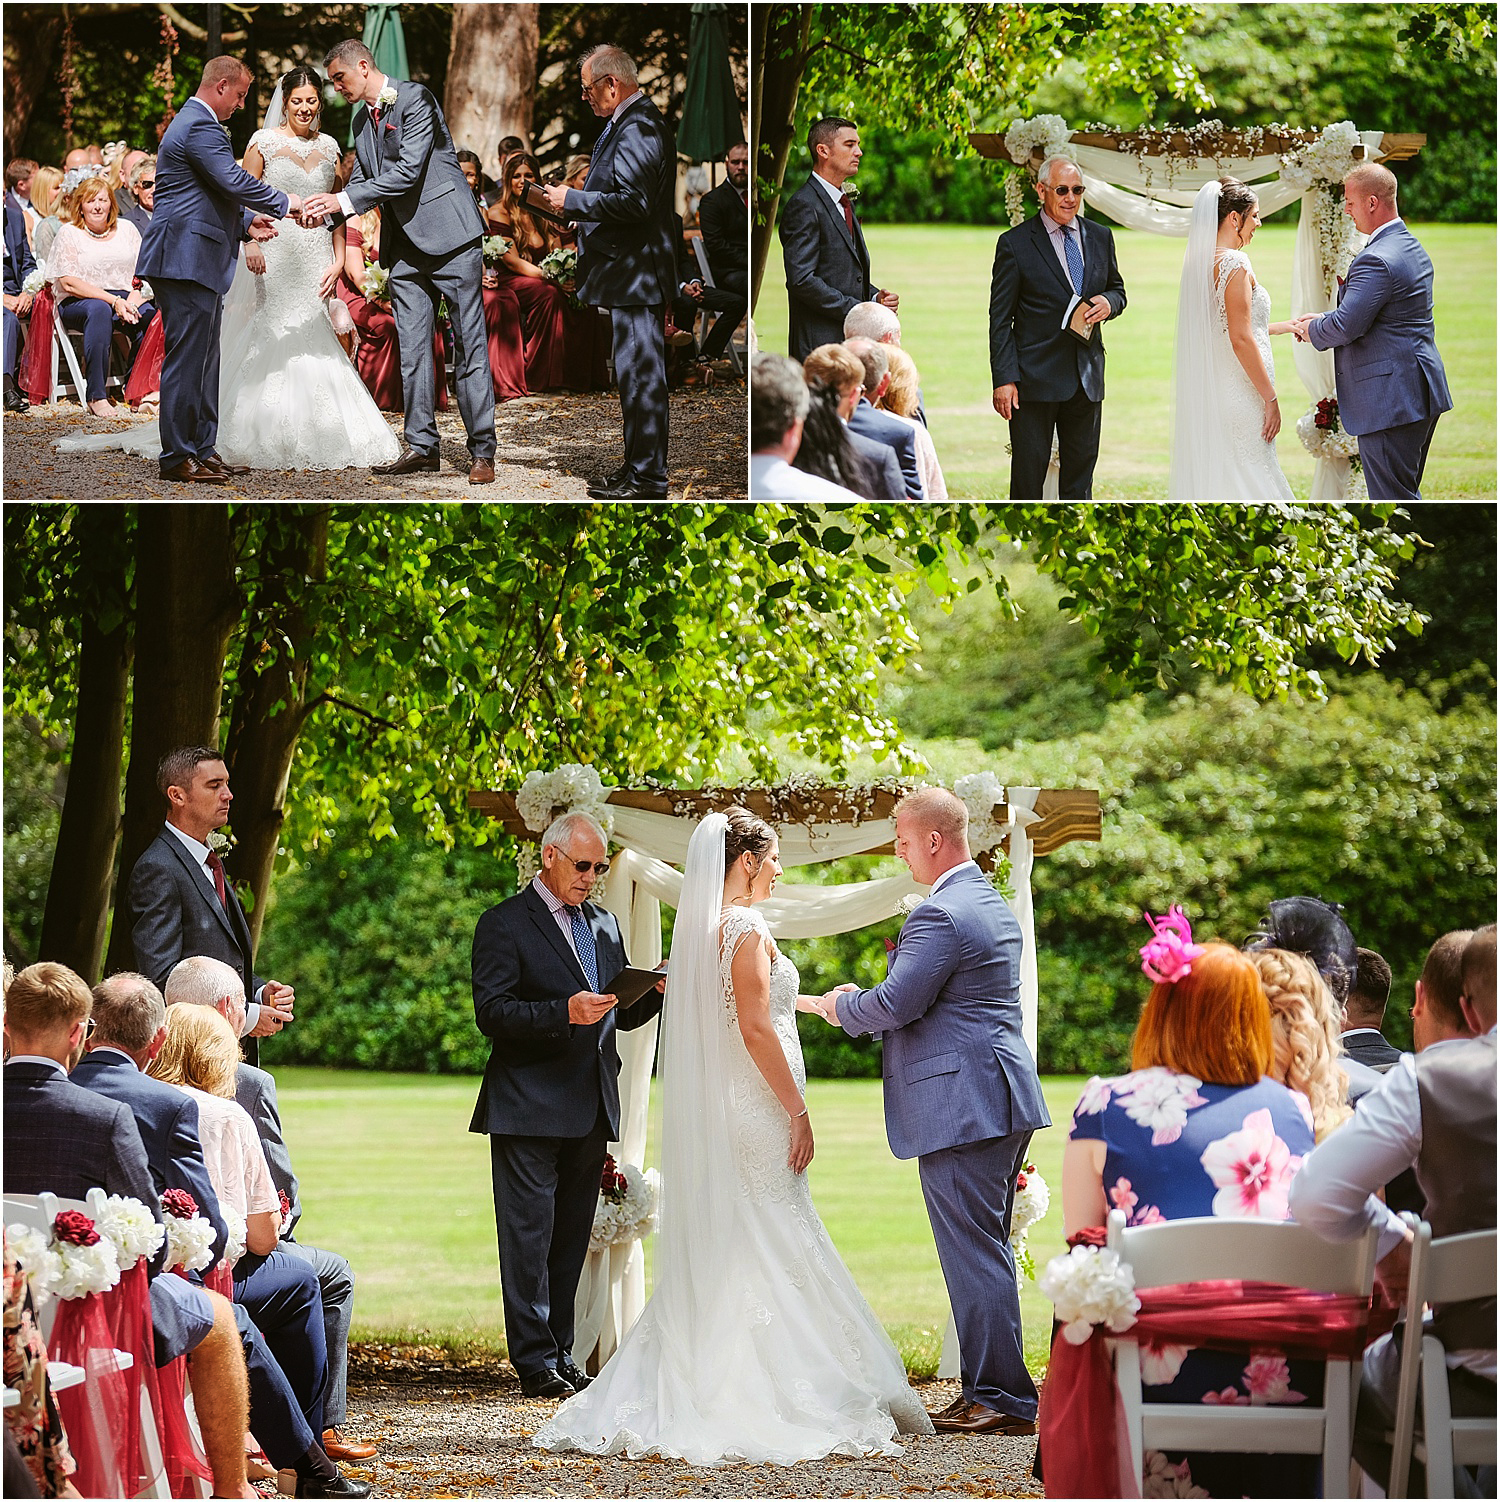 Wedding at Beamish Hall - wedding photography by www.2tonephotography.co.uk 146.jpg